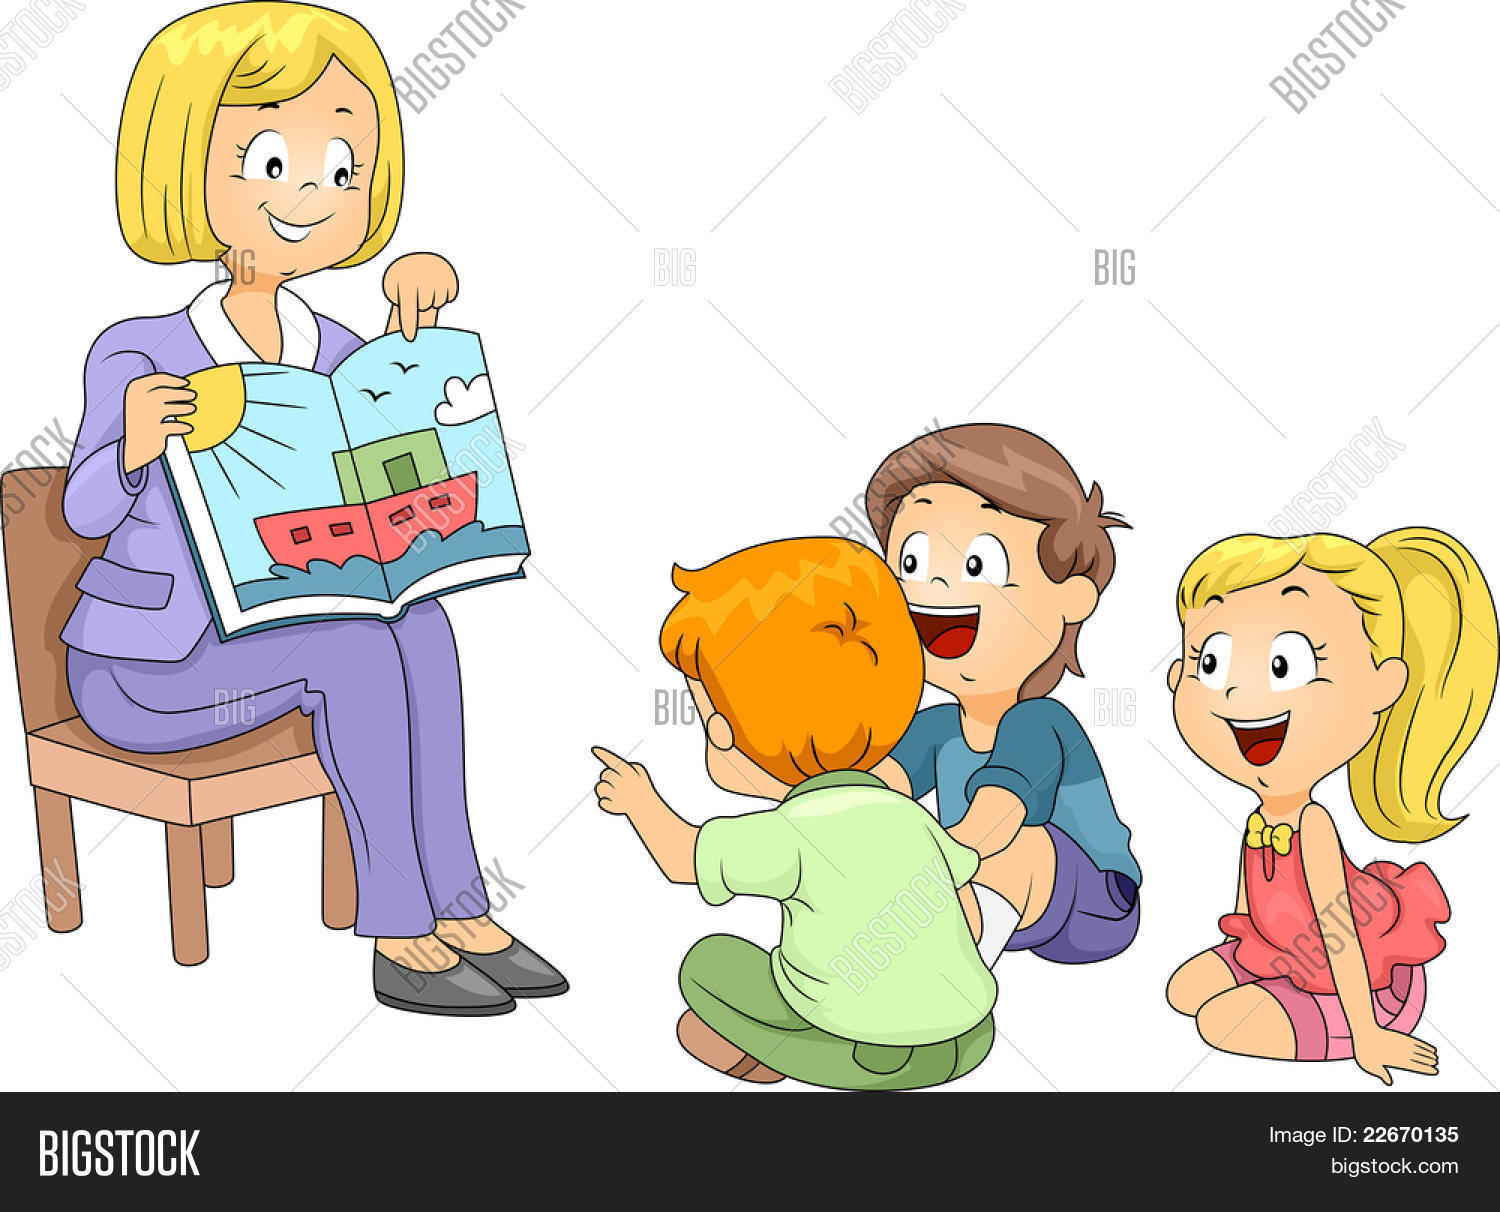 Stock Vector Illustration Of Kids Listening To A Story on Preschool Storytime